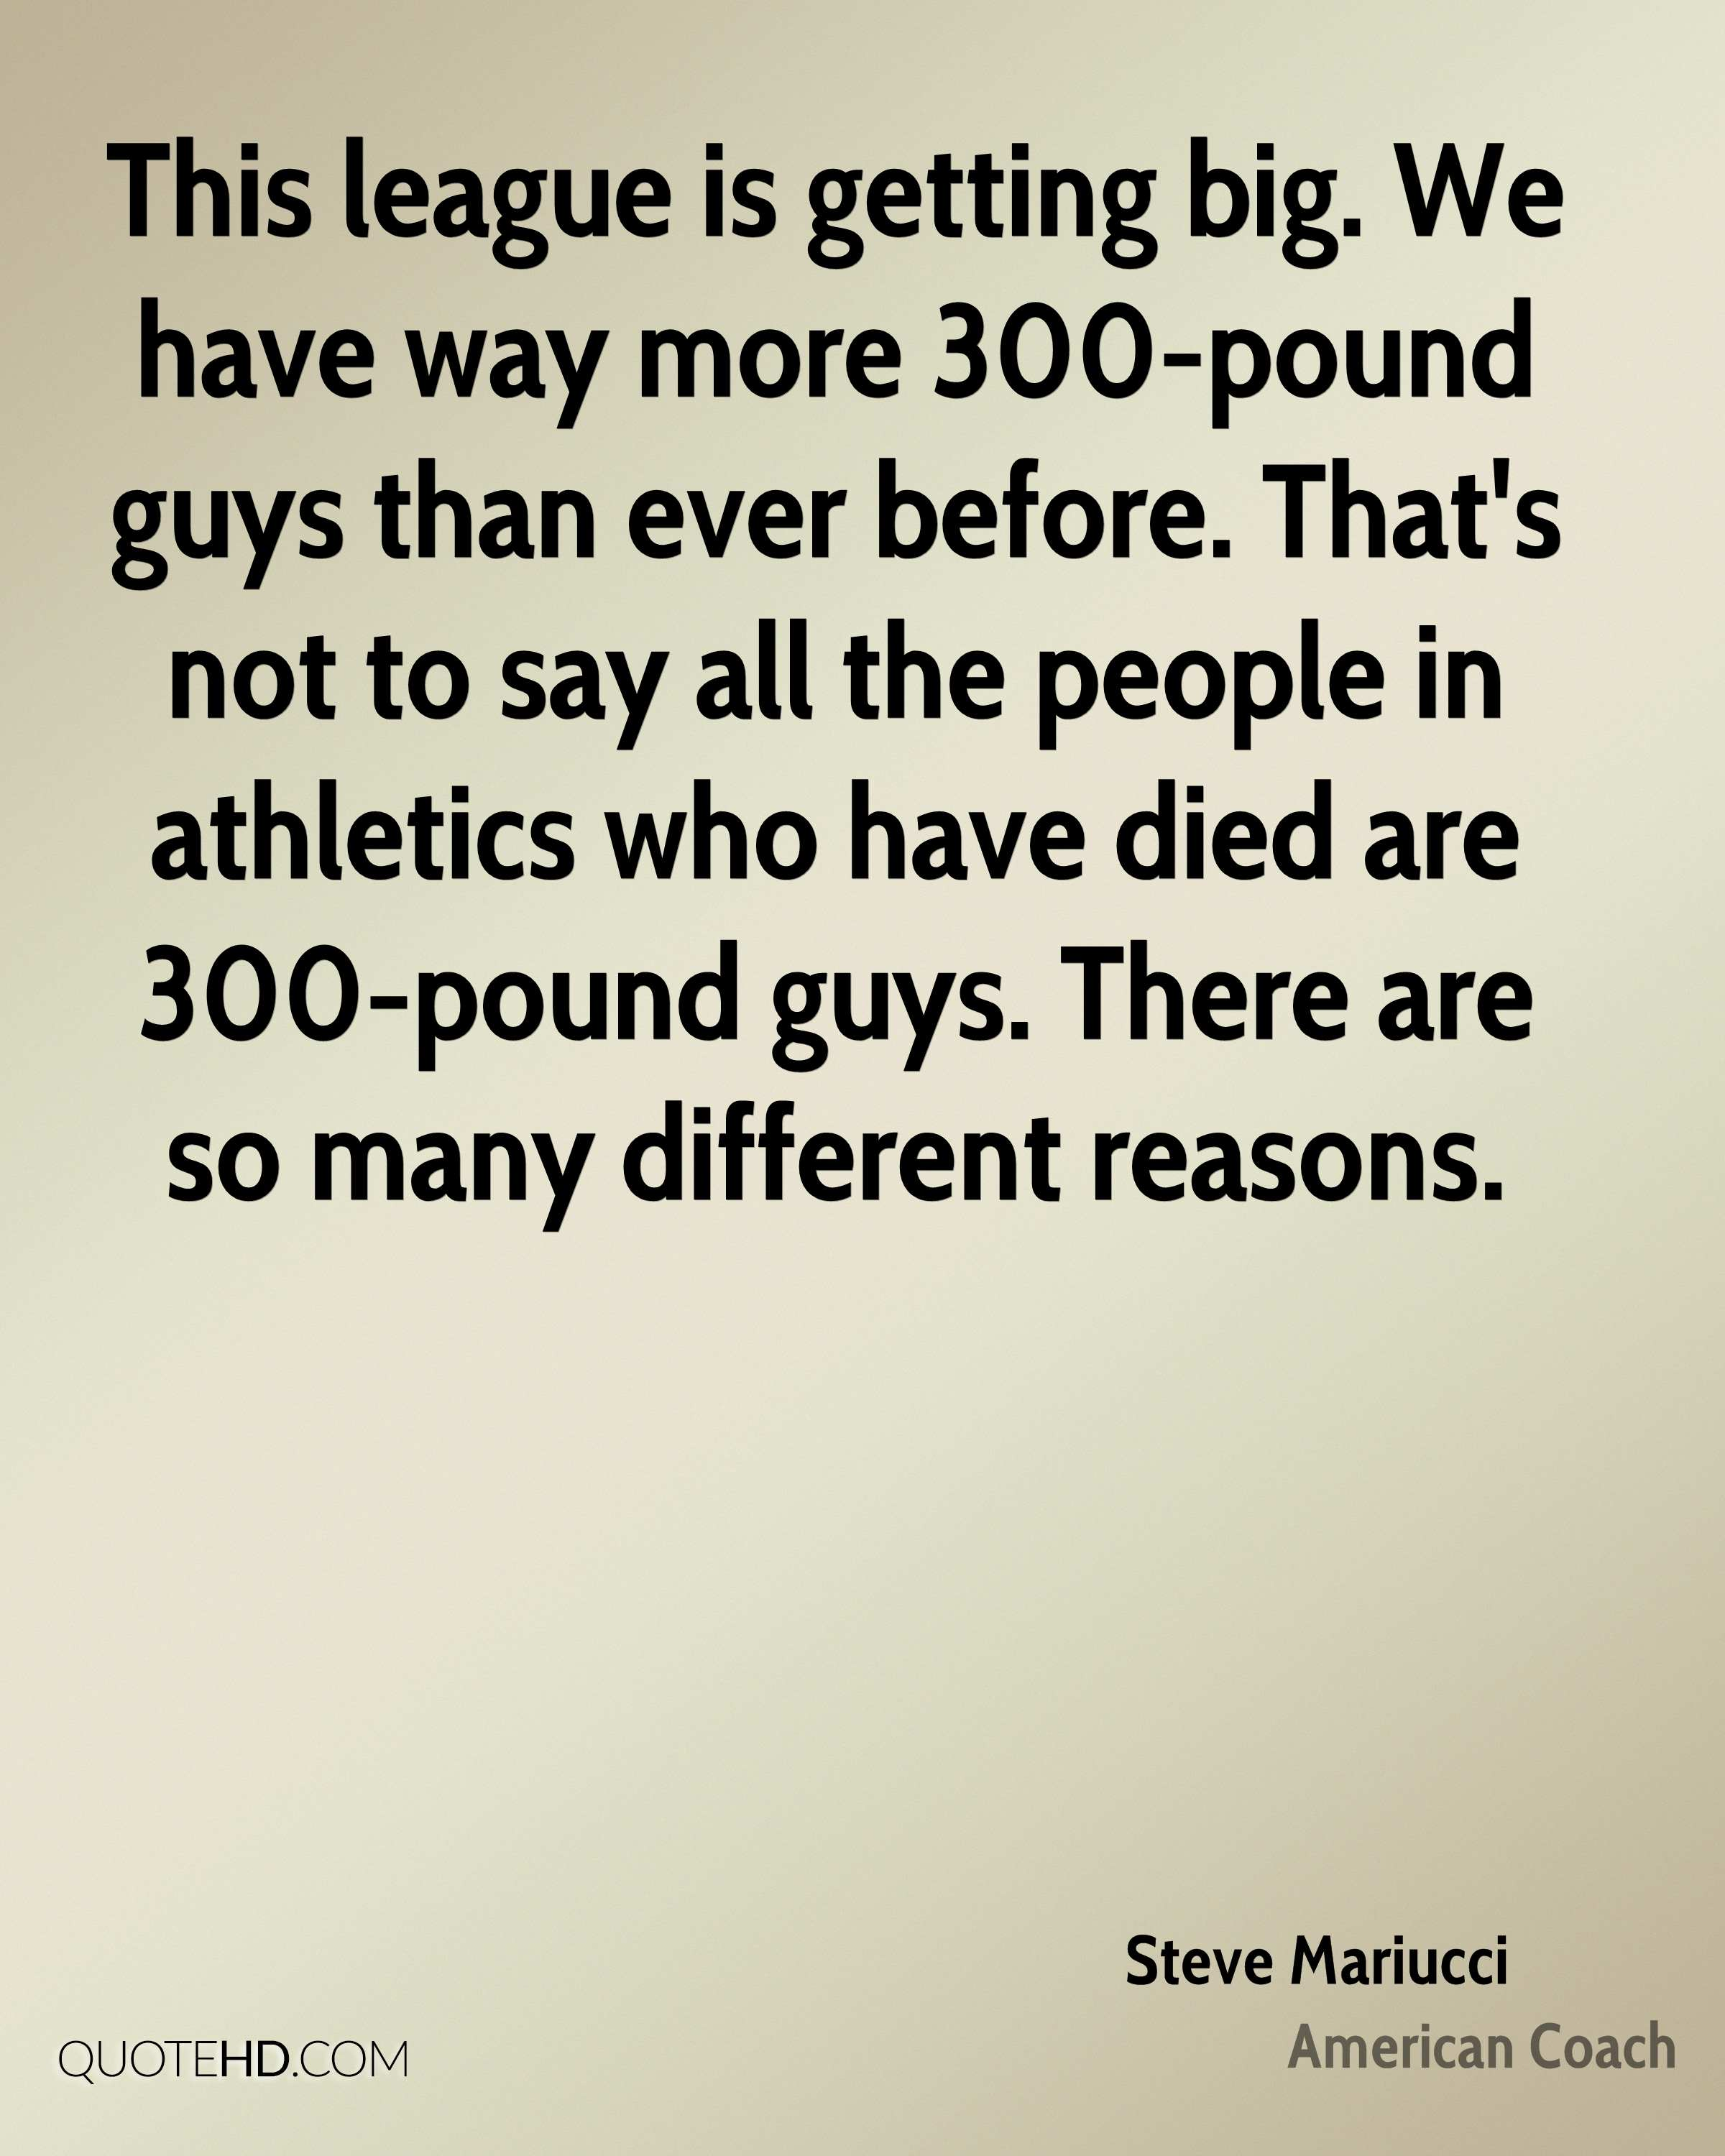 This league is getting big. We have way more 300-pound guys than ever before. That's not to say all the people in athletics who have died are 300-pound guys. There are so many different reasons.